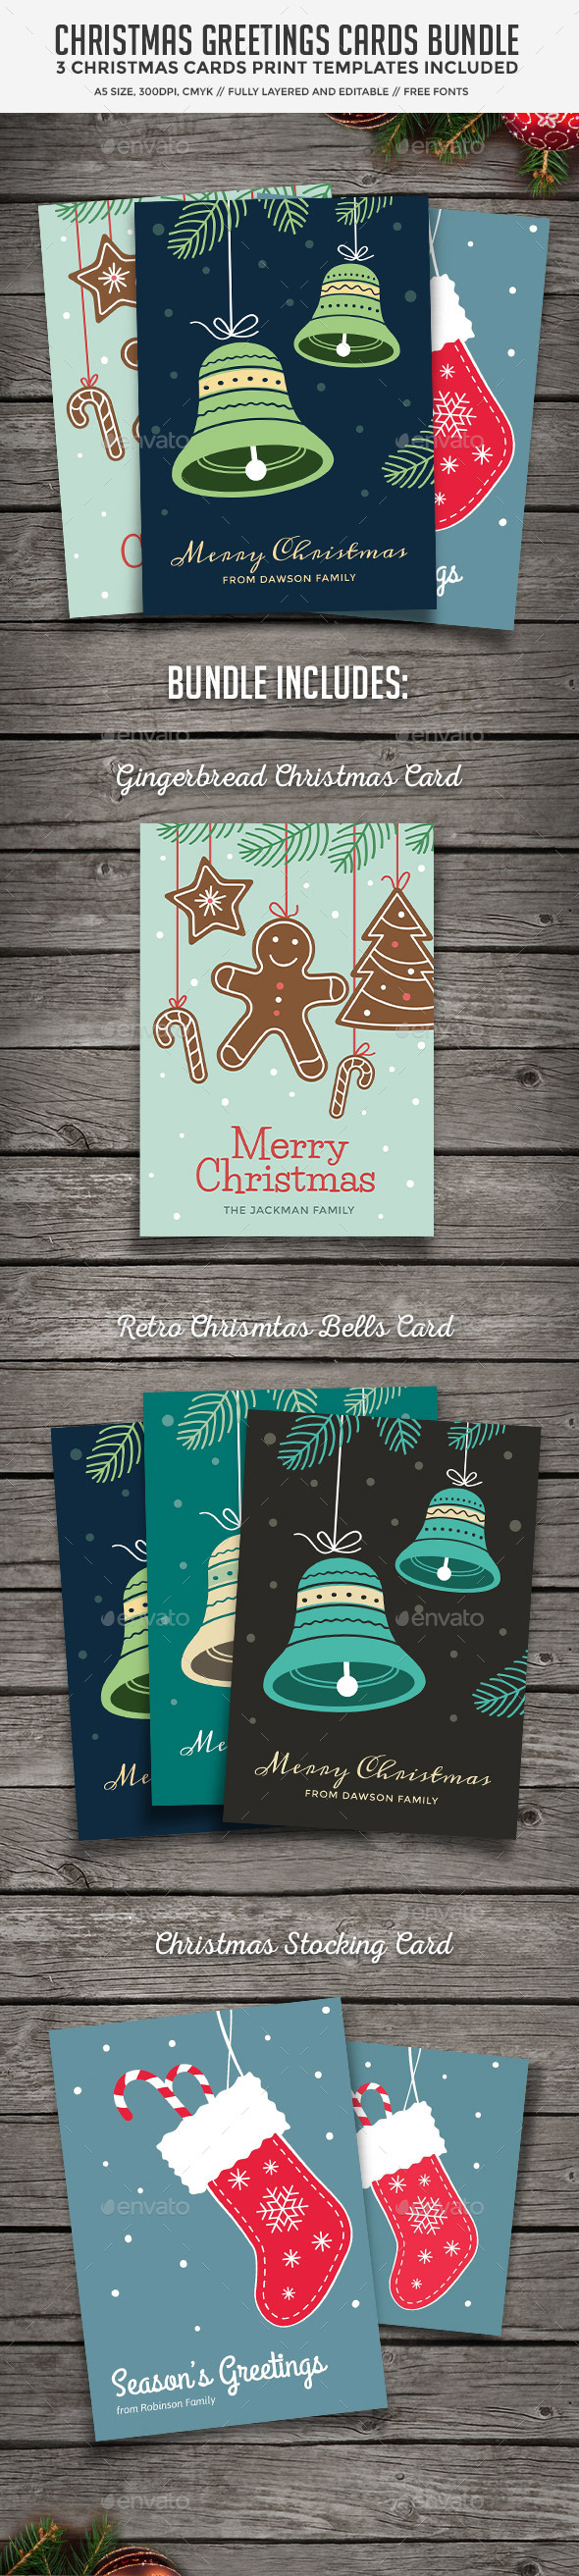 Christmas Cards Bundle - Holiday Greeting Cards